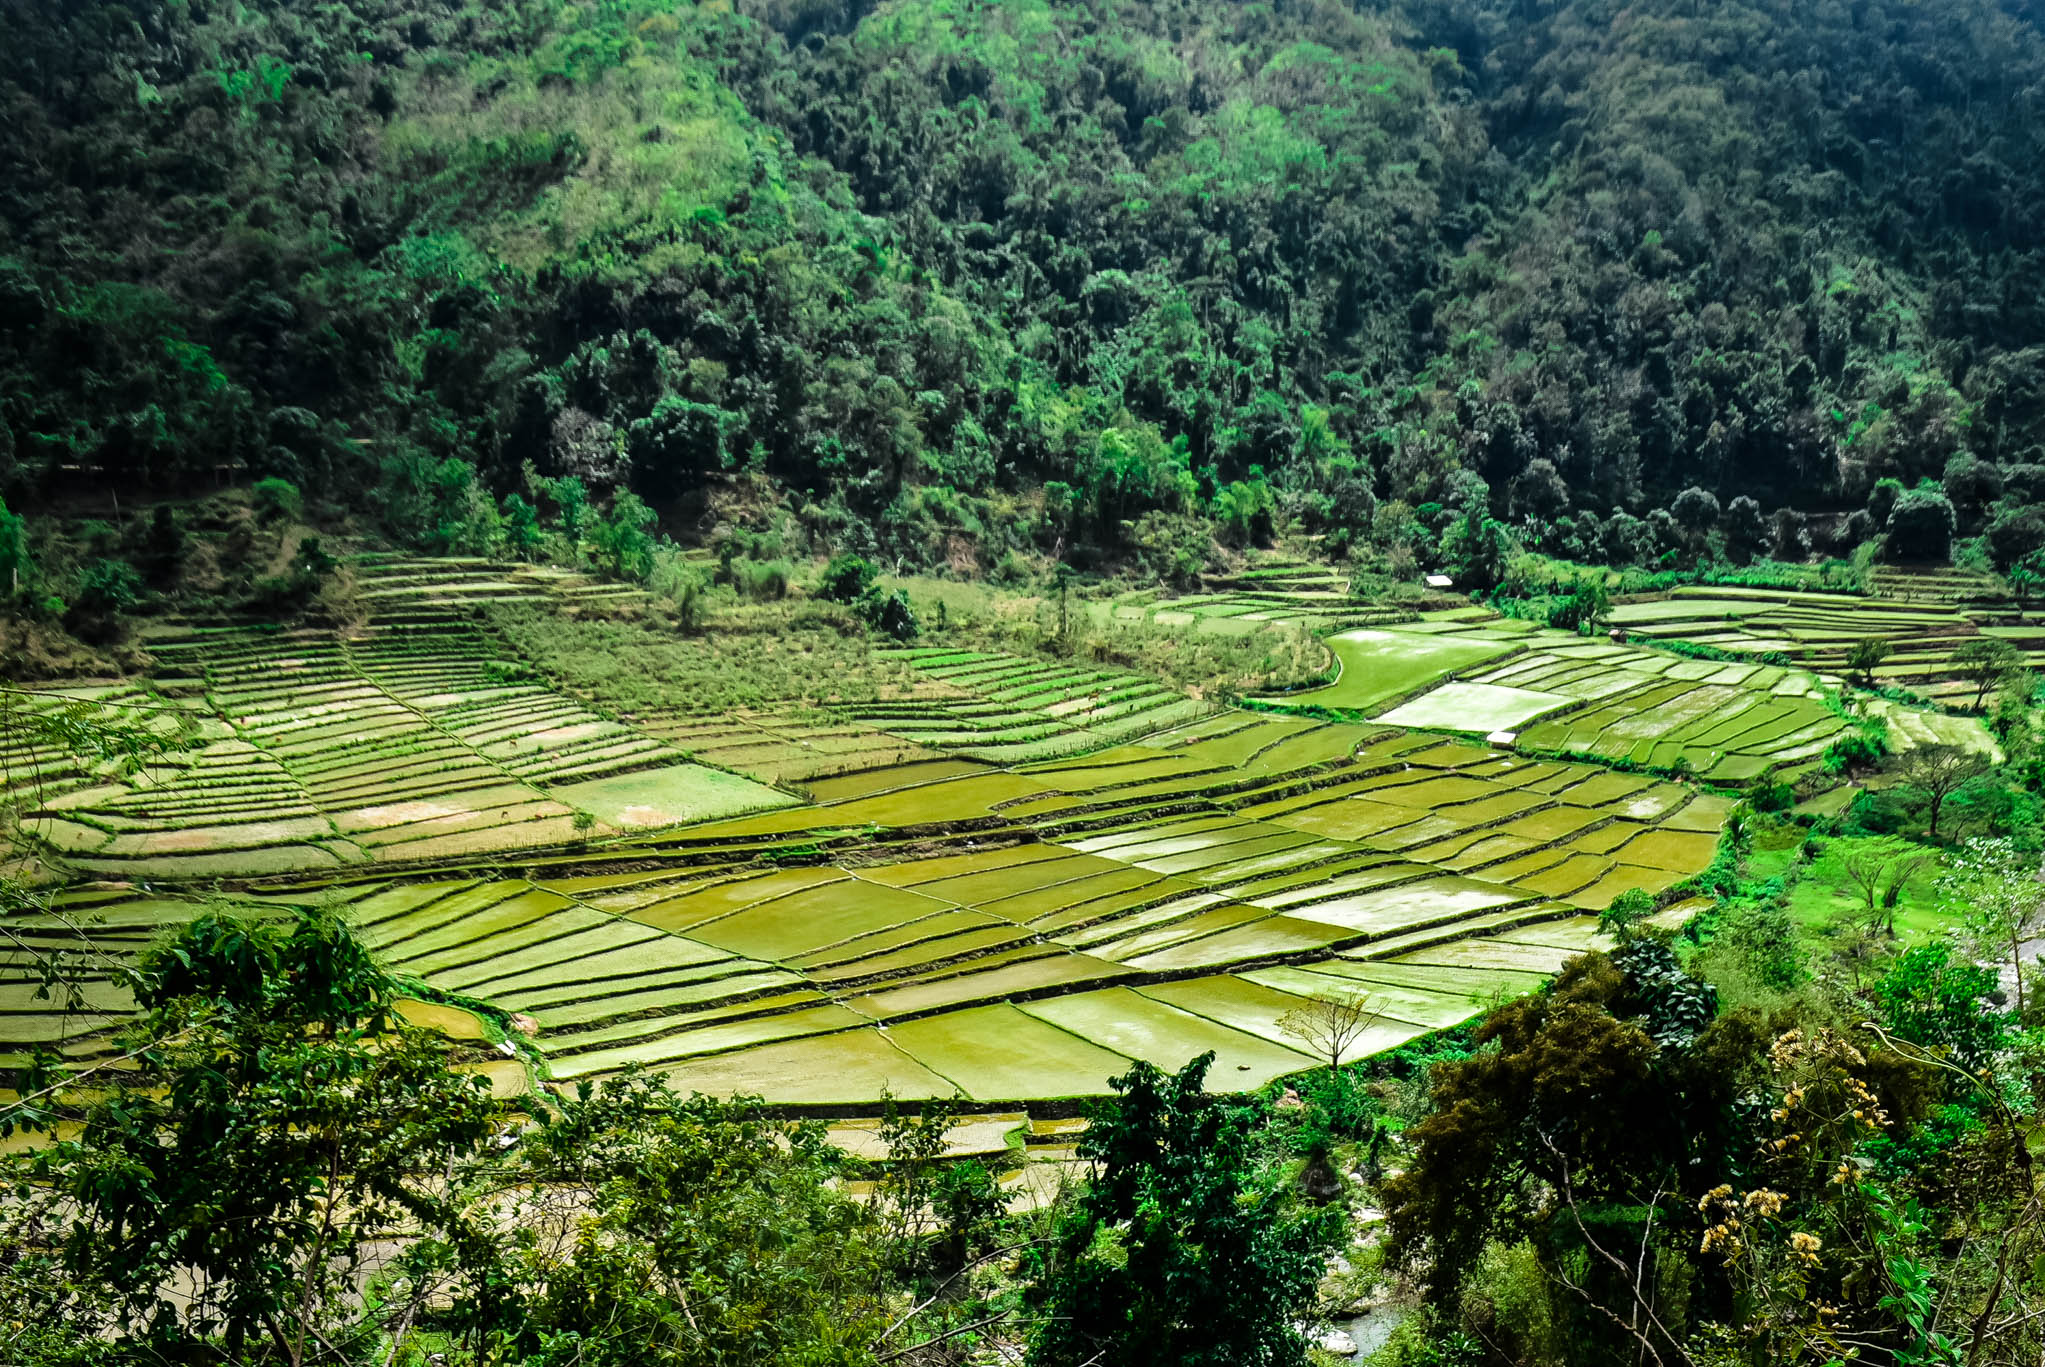 kili rice terraces (1 of 1)